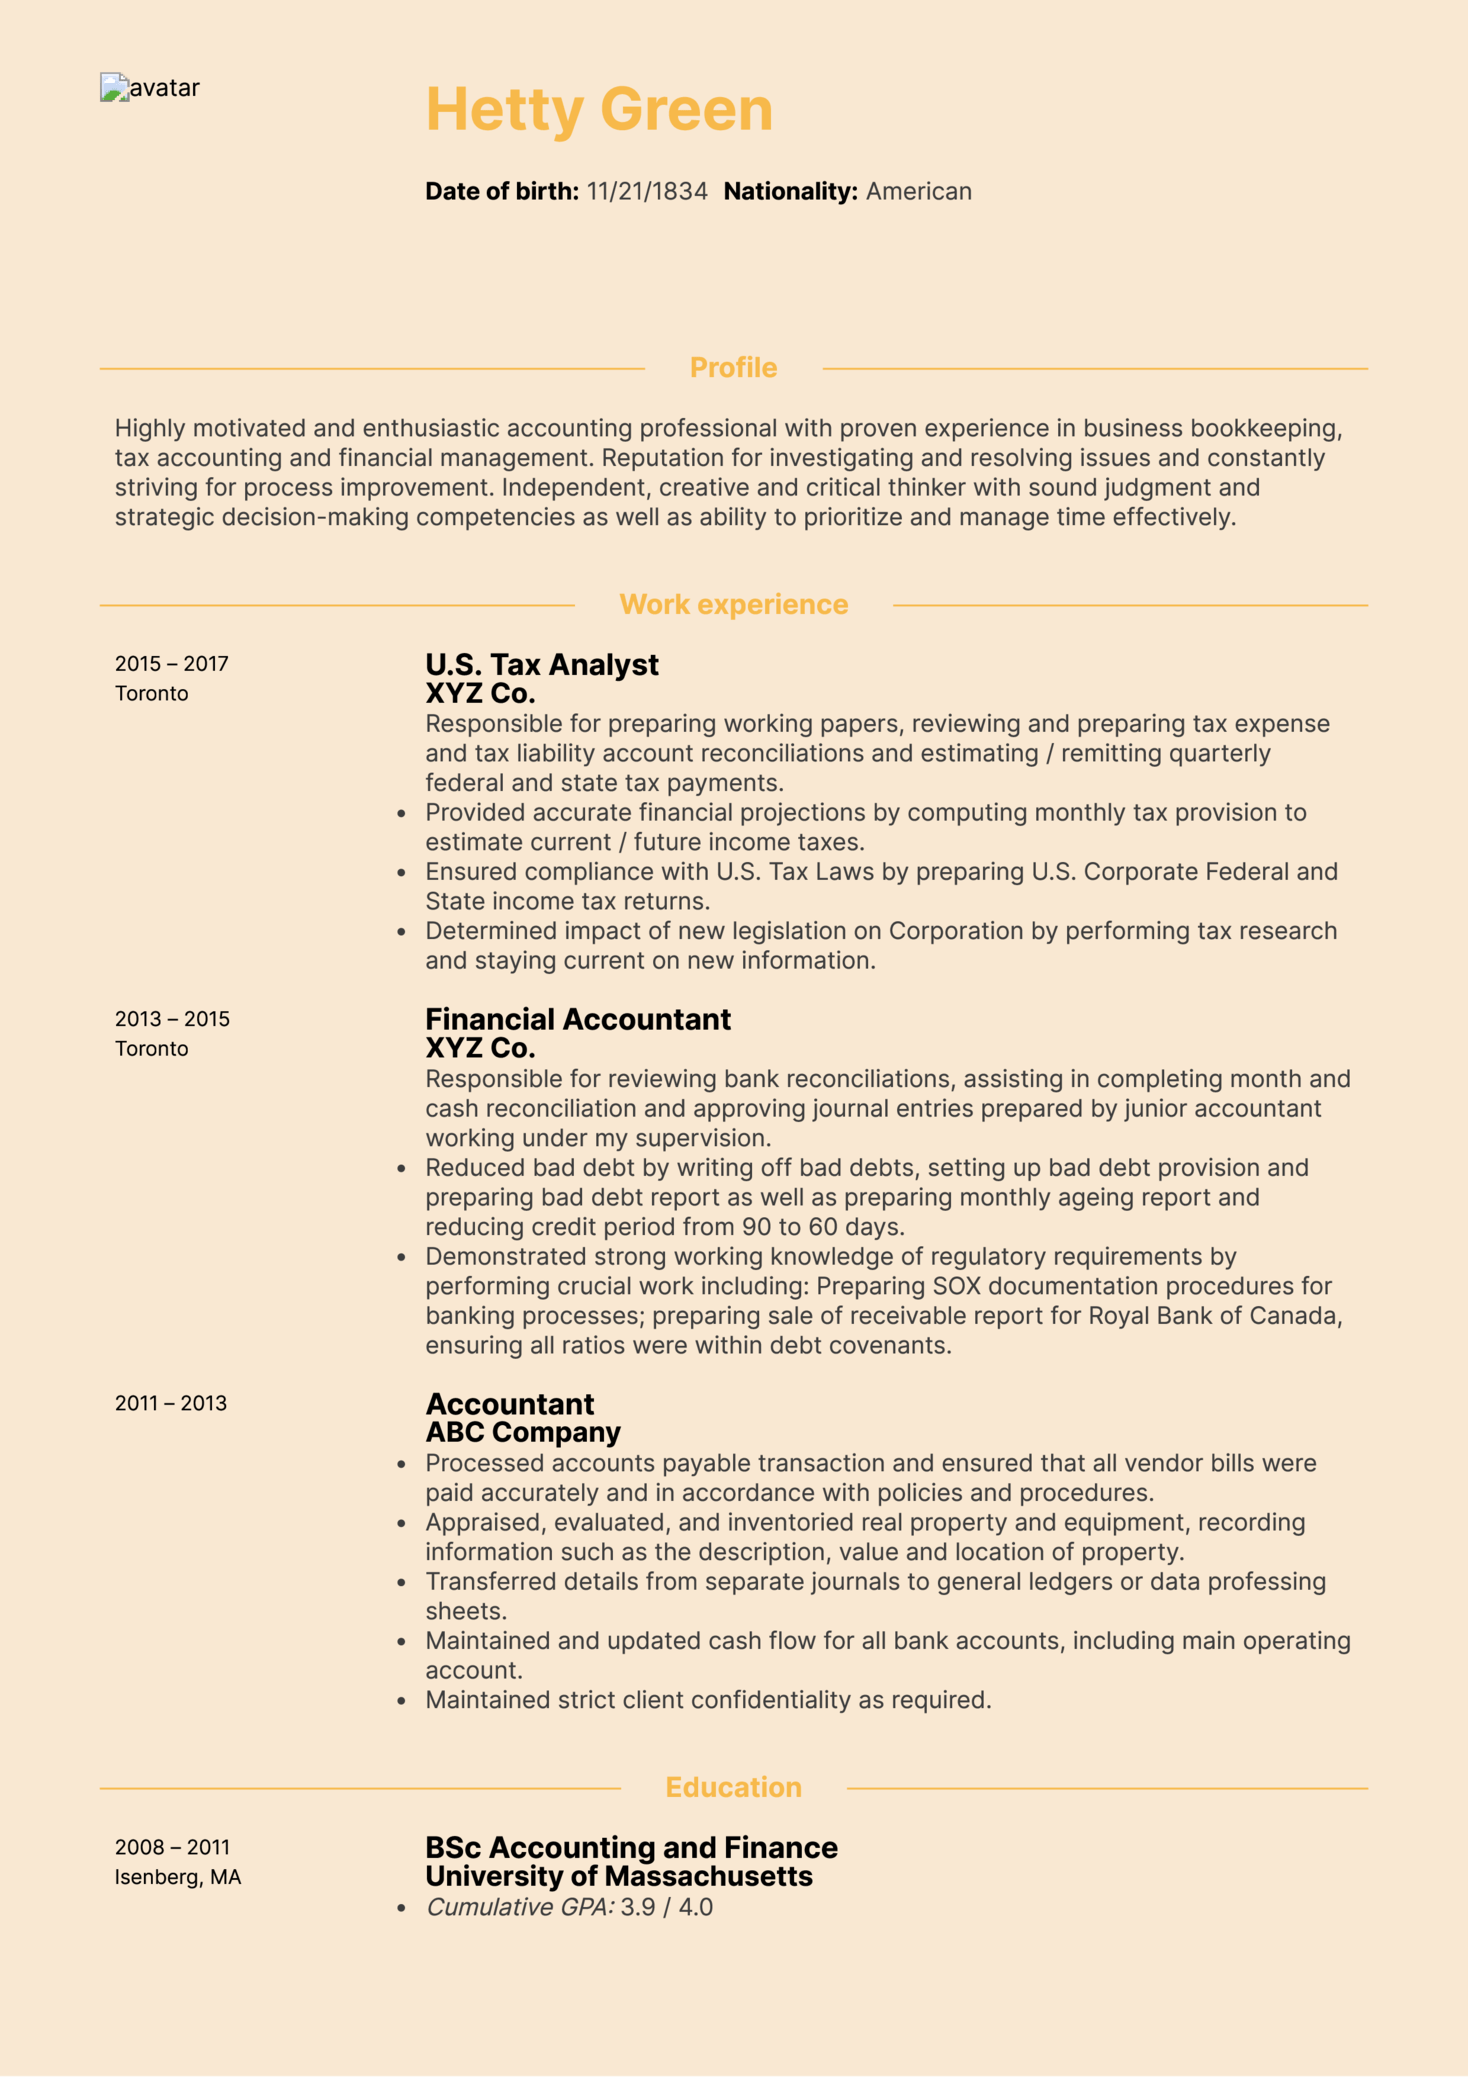 Cpa tax accountant resume sample resume samples career help center cpa tax accountant resume sample thecheapjerseys